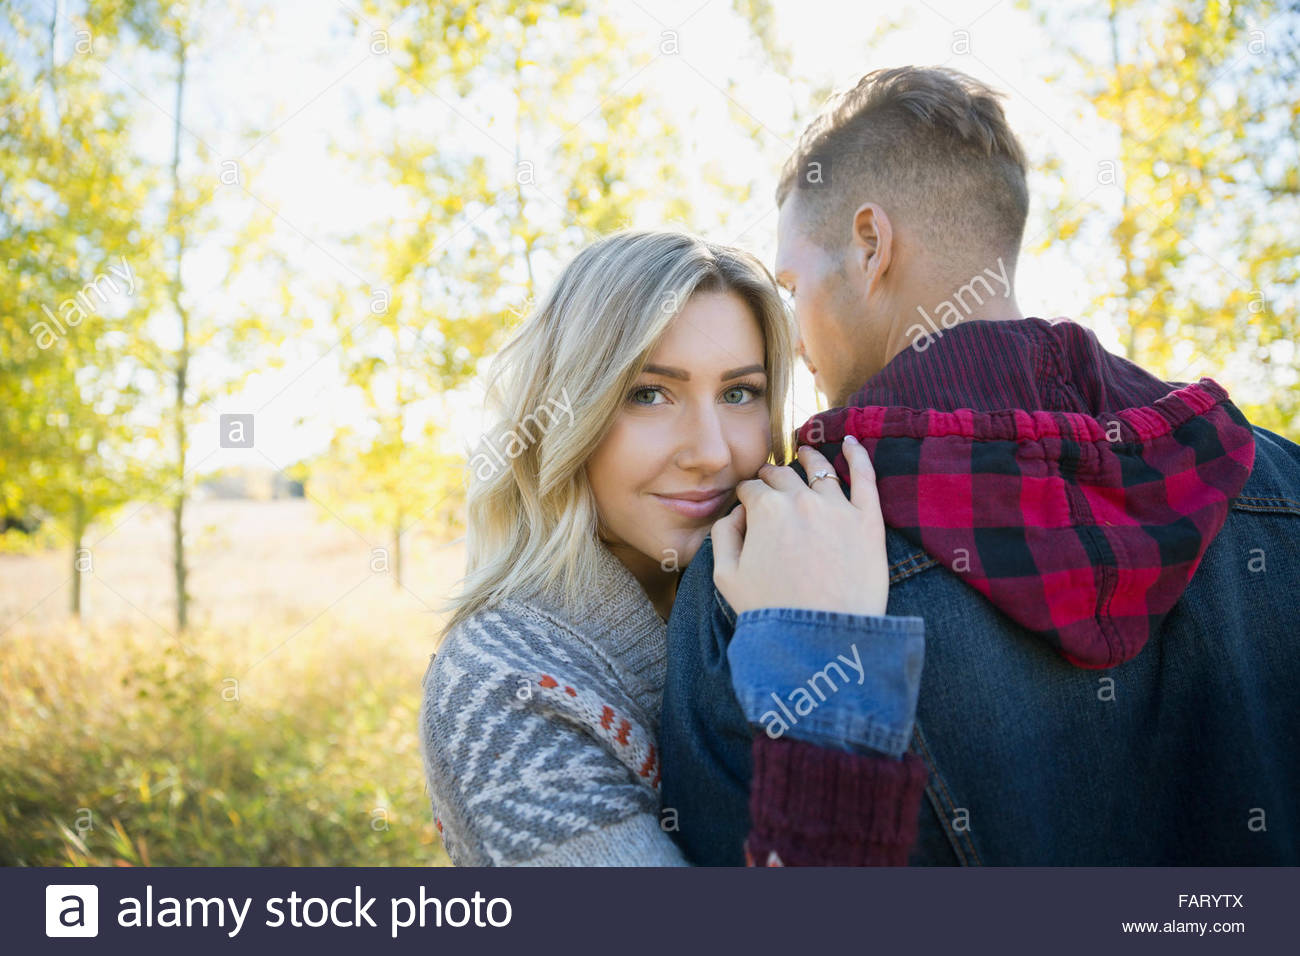 Portrait of smiling woman hugging boyfriend in field Photo Stock